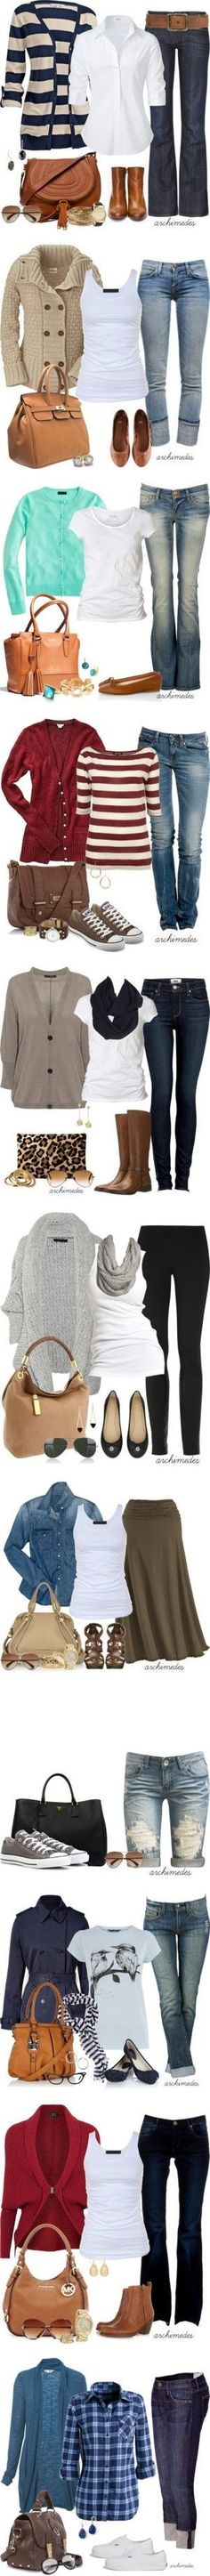 Great outfits...Cardigans make everything look good ;)